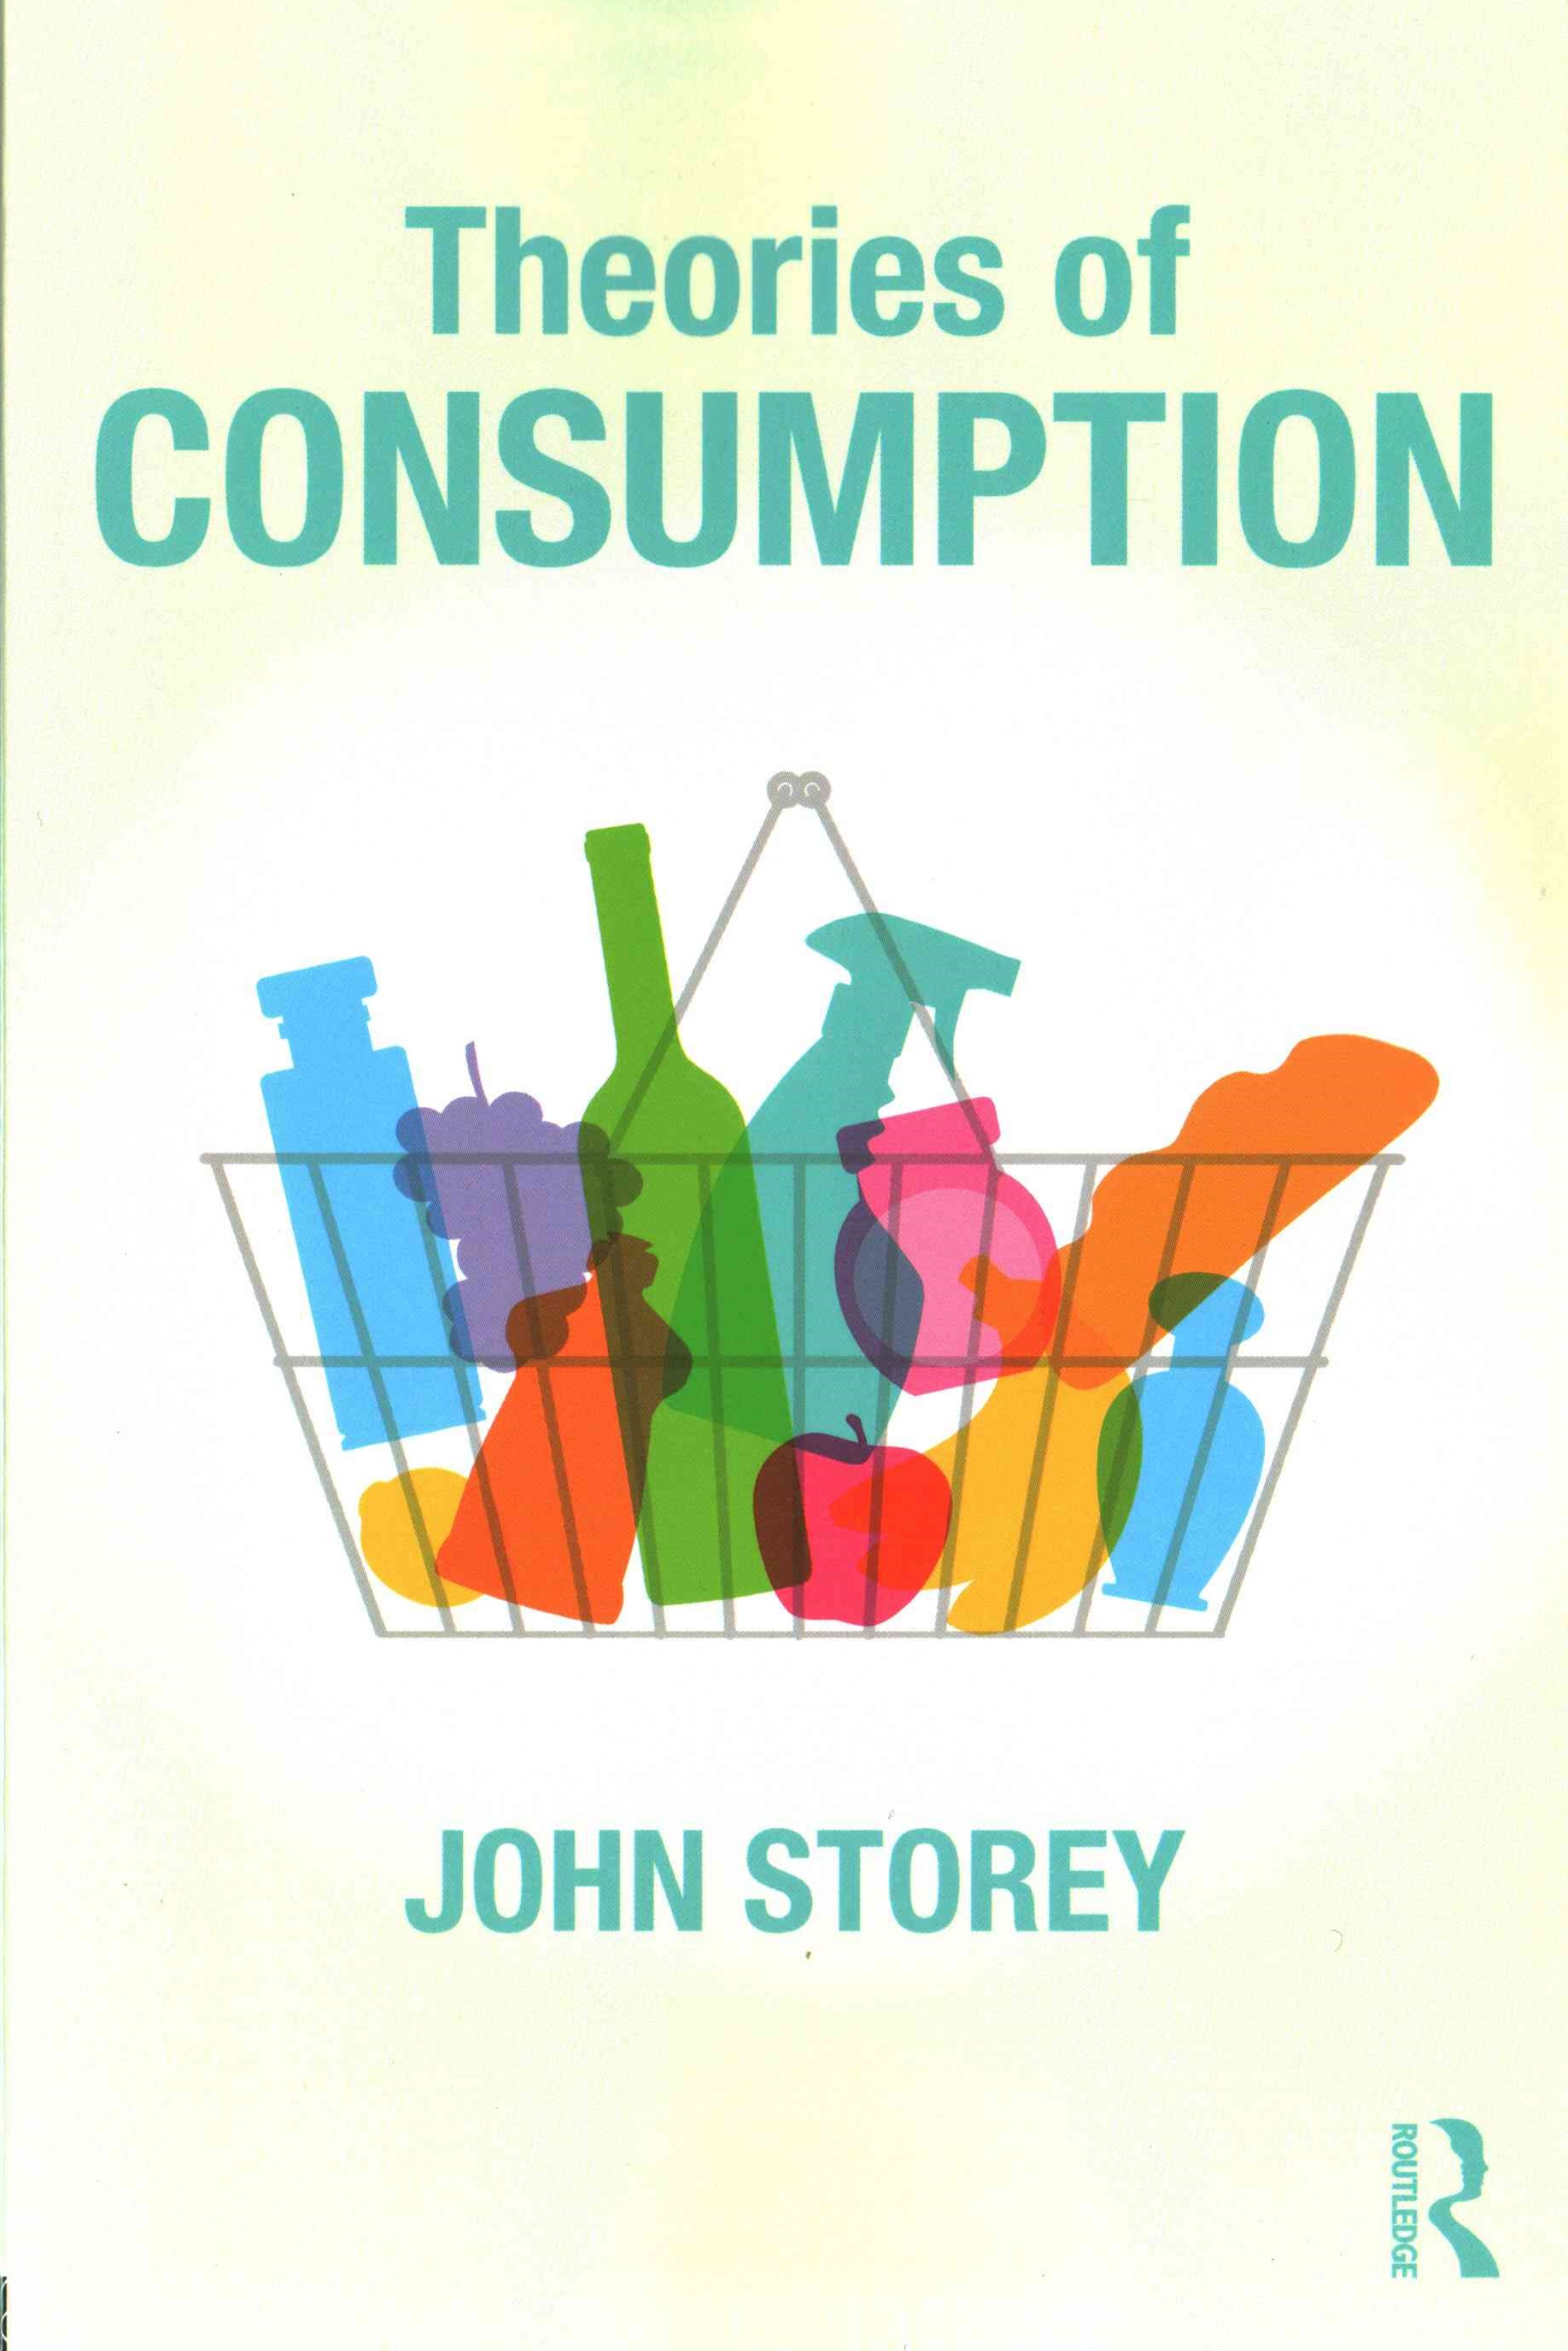 Theories of Consumption